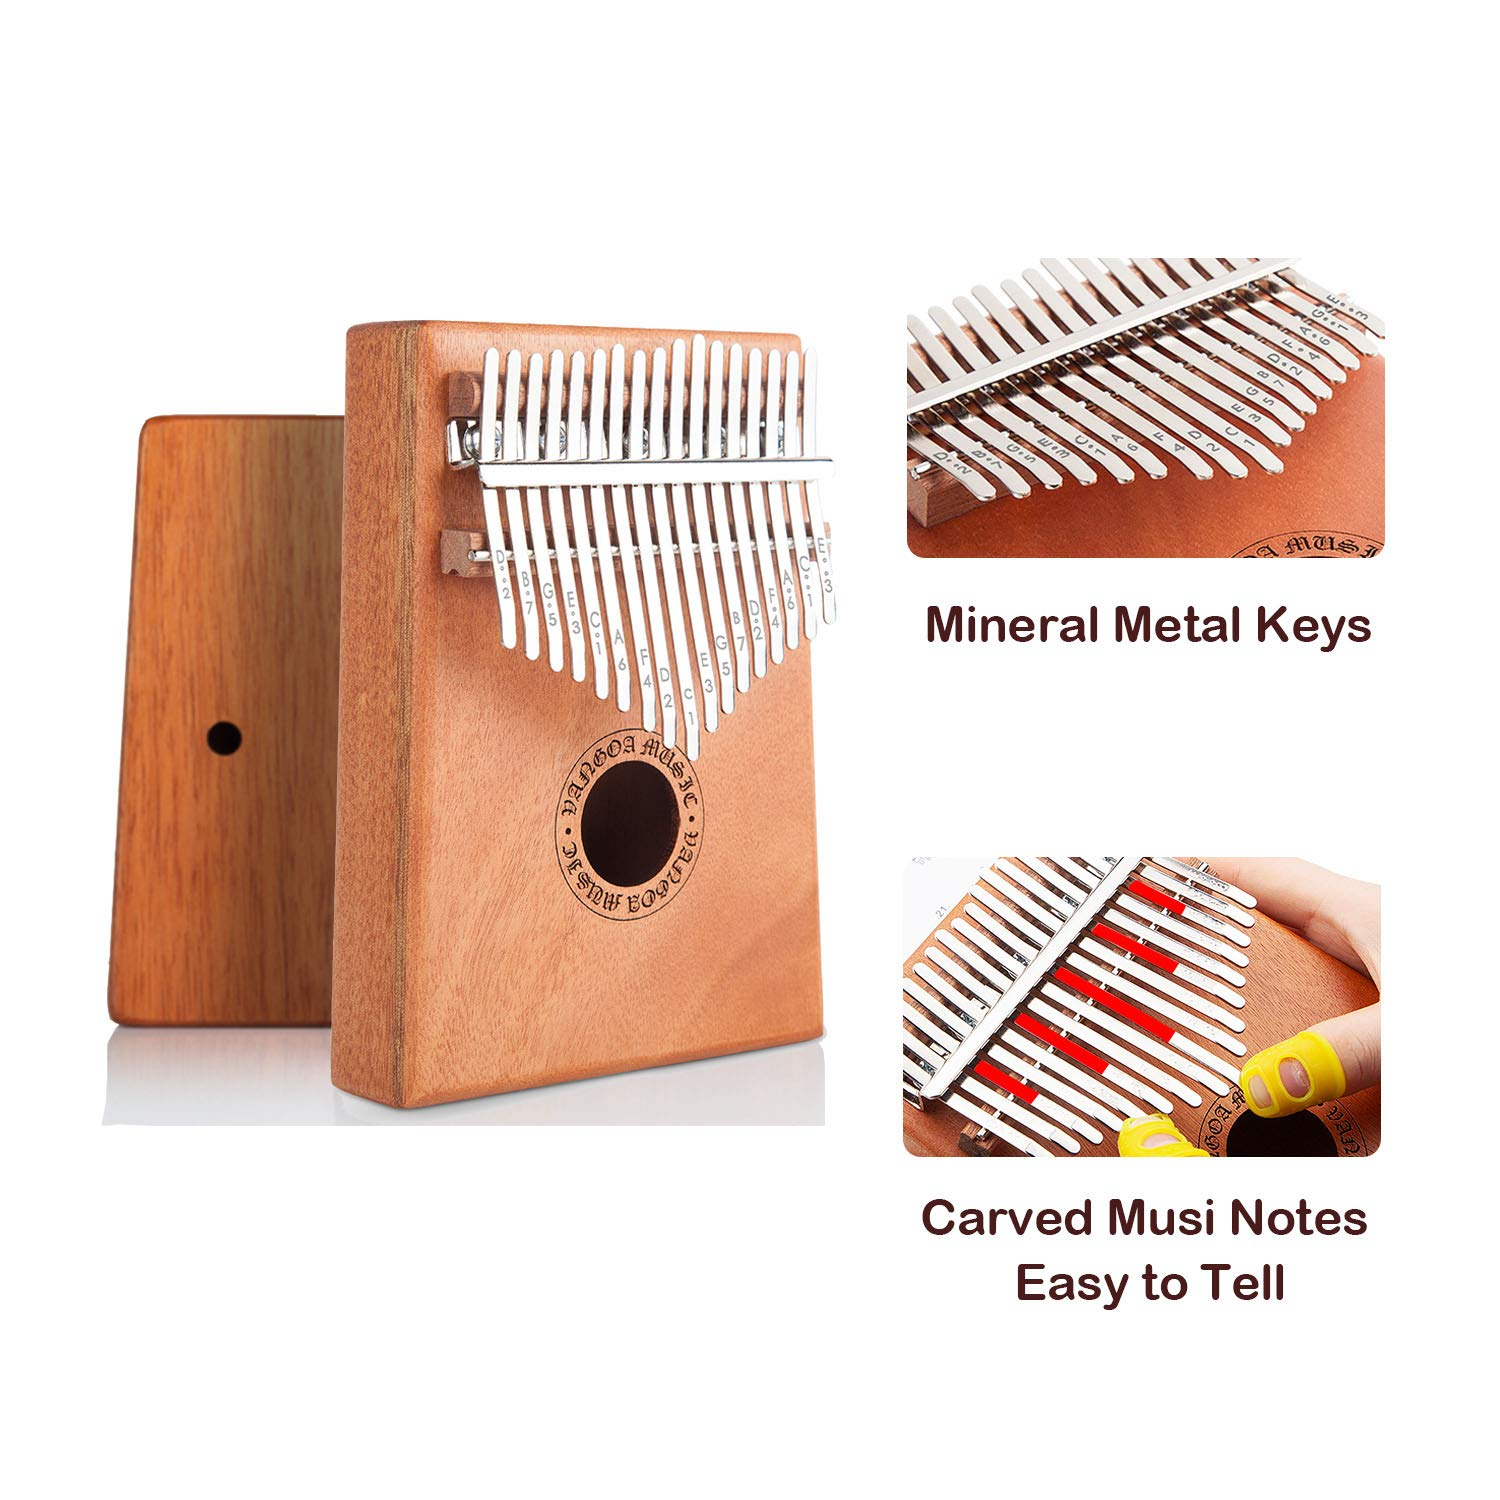 Vangoa Kalimba 17 keys African Thumb Piano kit with Rubber Finger Guards, Tuning Hammer, Carry Bag, Cloth bag, Pickup and Key stickers by Vangoa (Image #3)